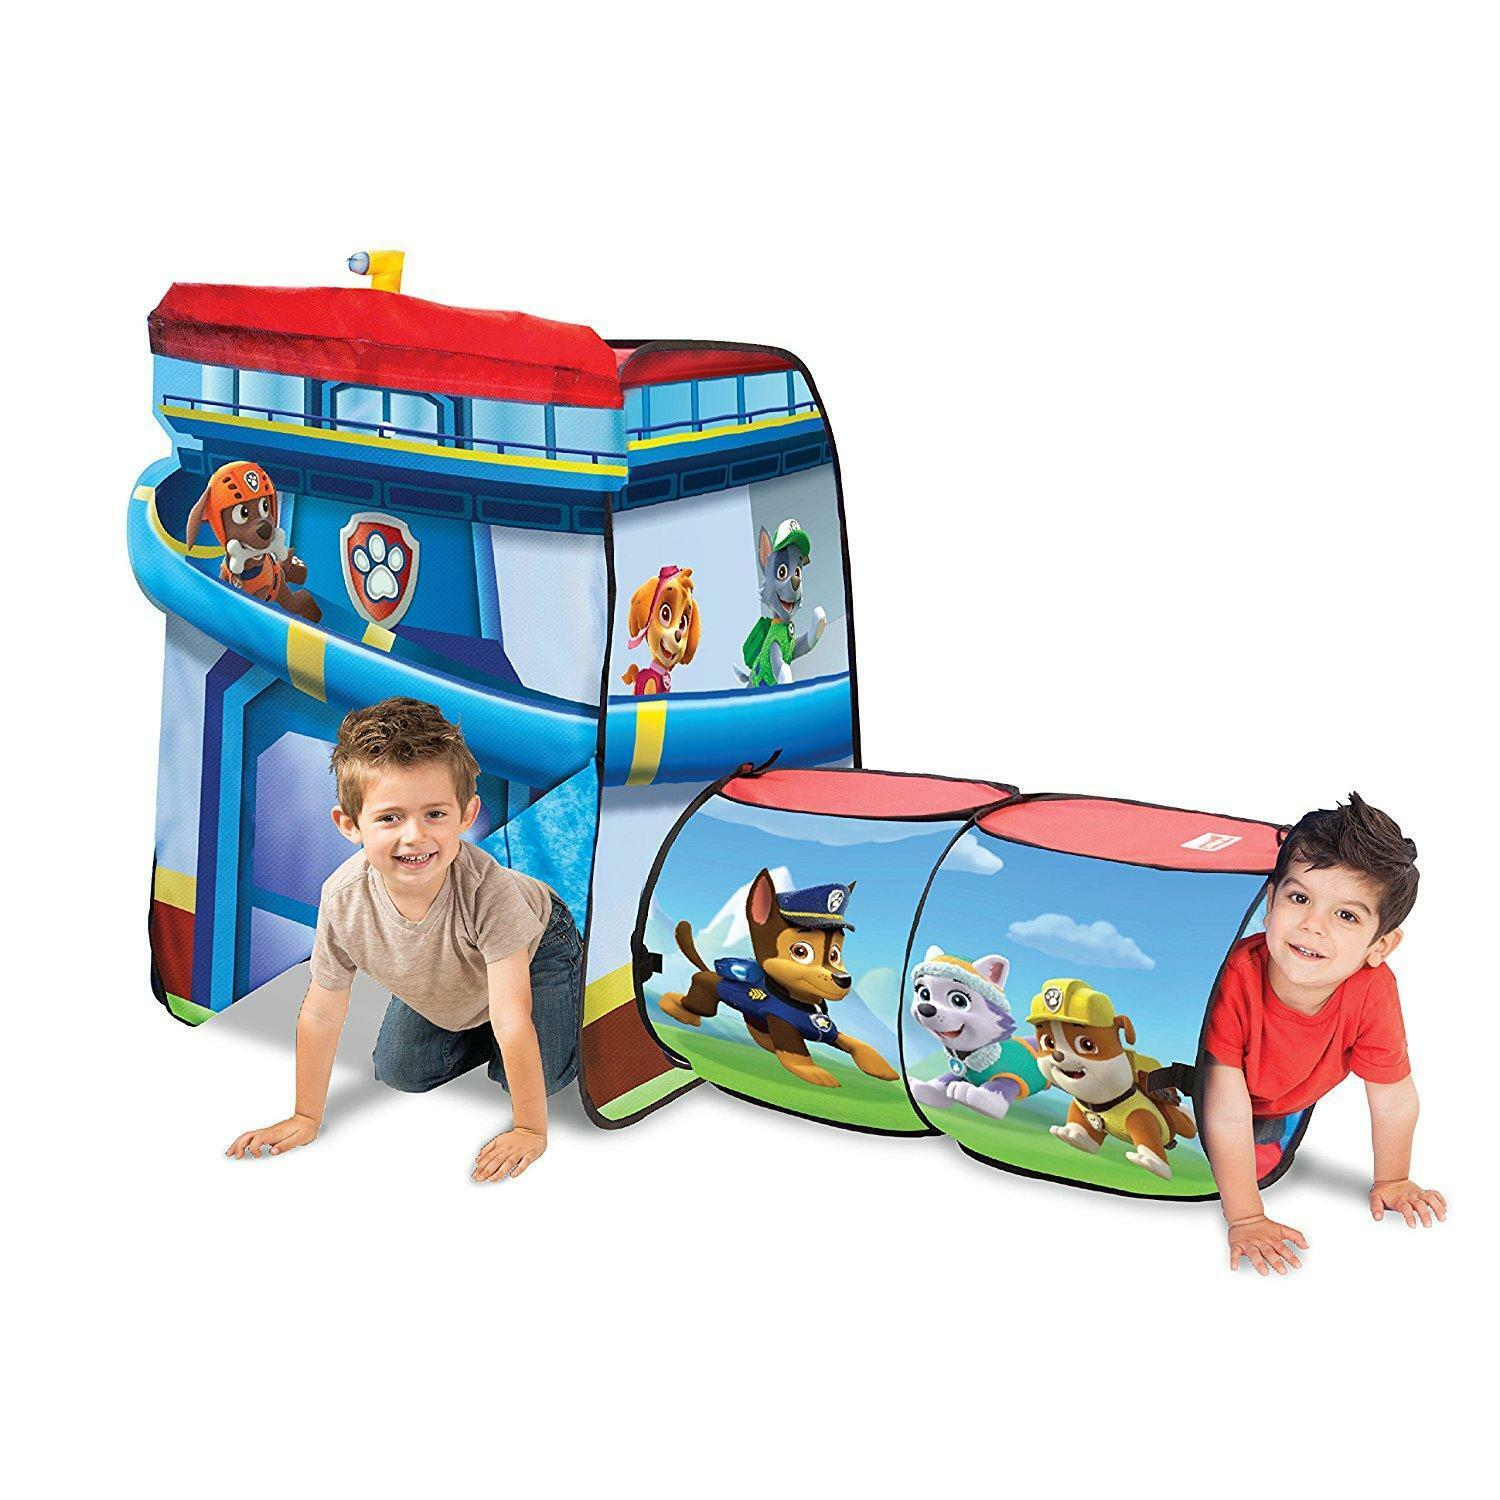 Playhut Paw Patrol Tent 2 Structures Kids Toys Toddlers Tunnel Fold Down New